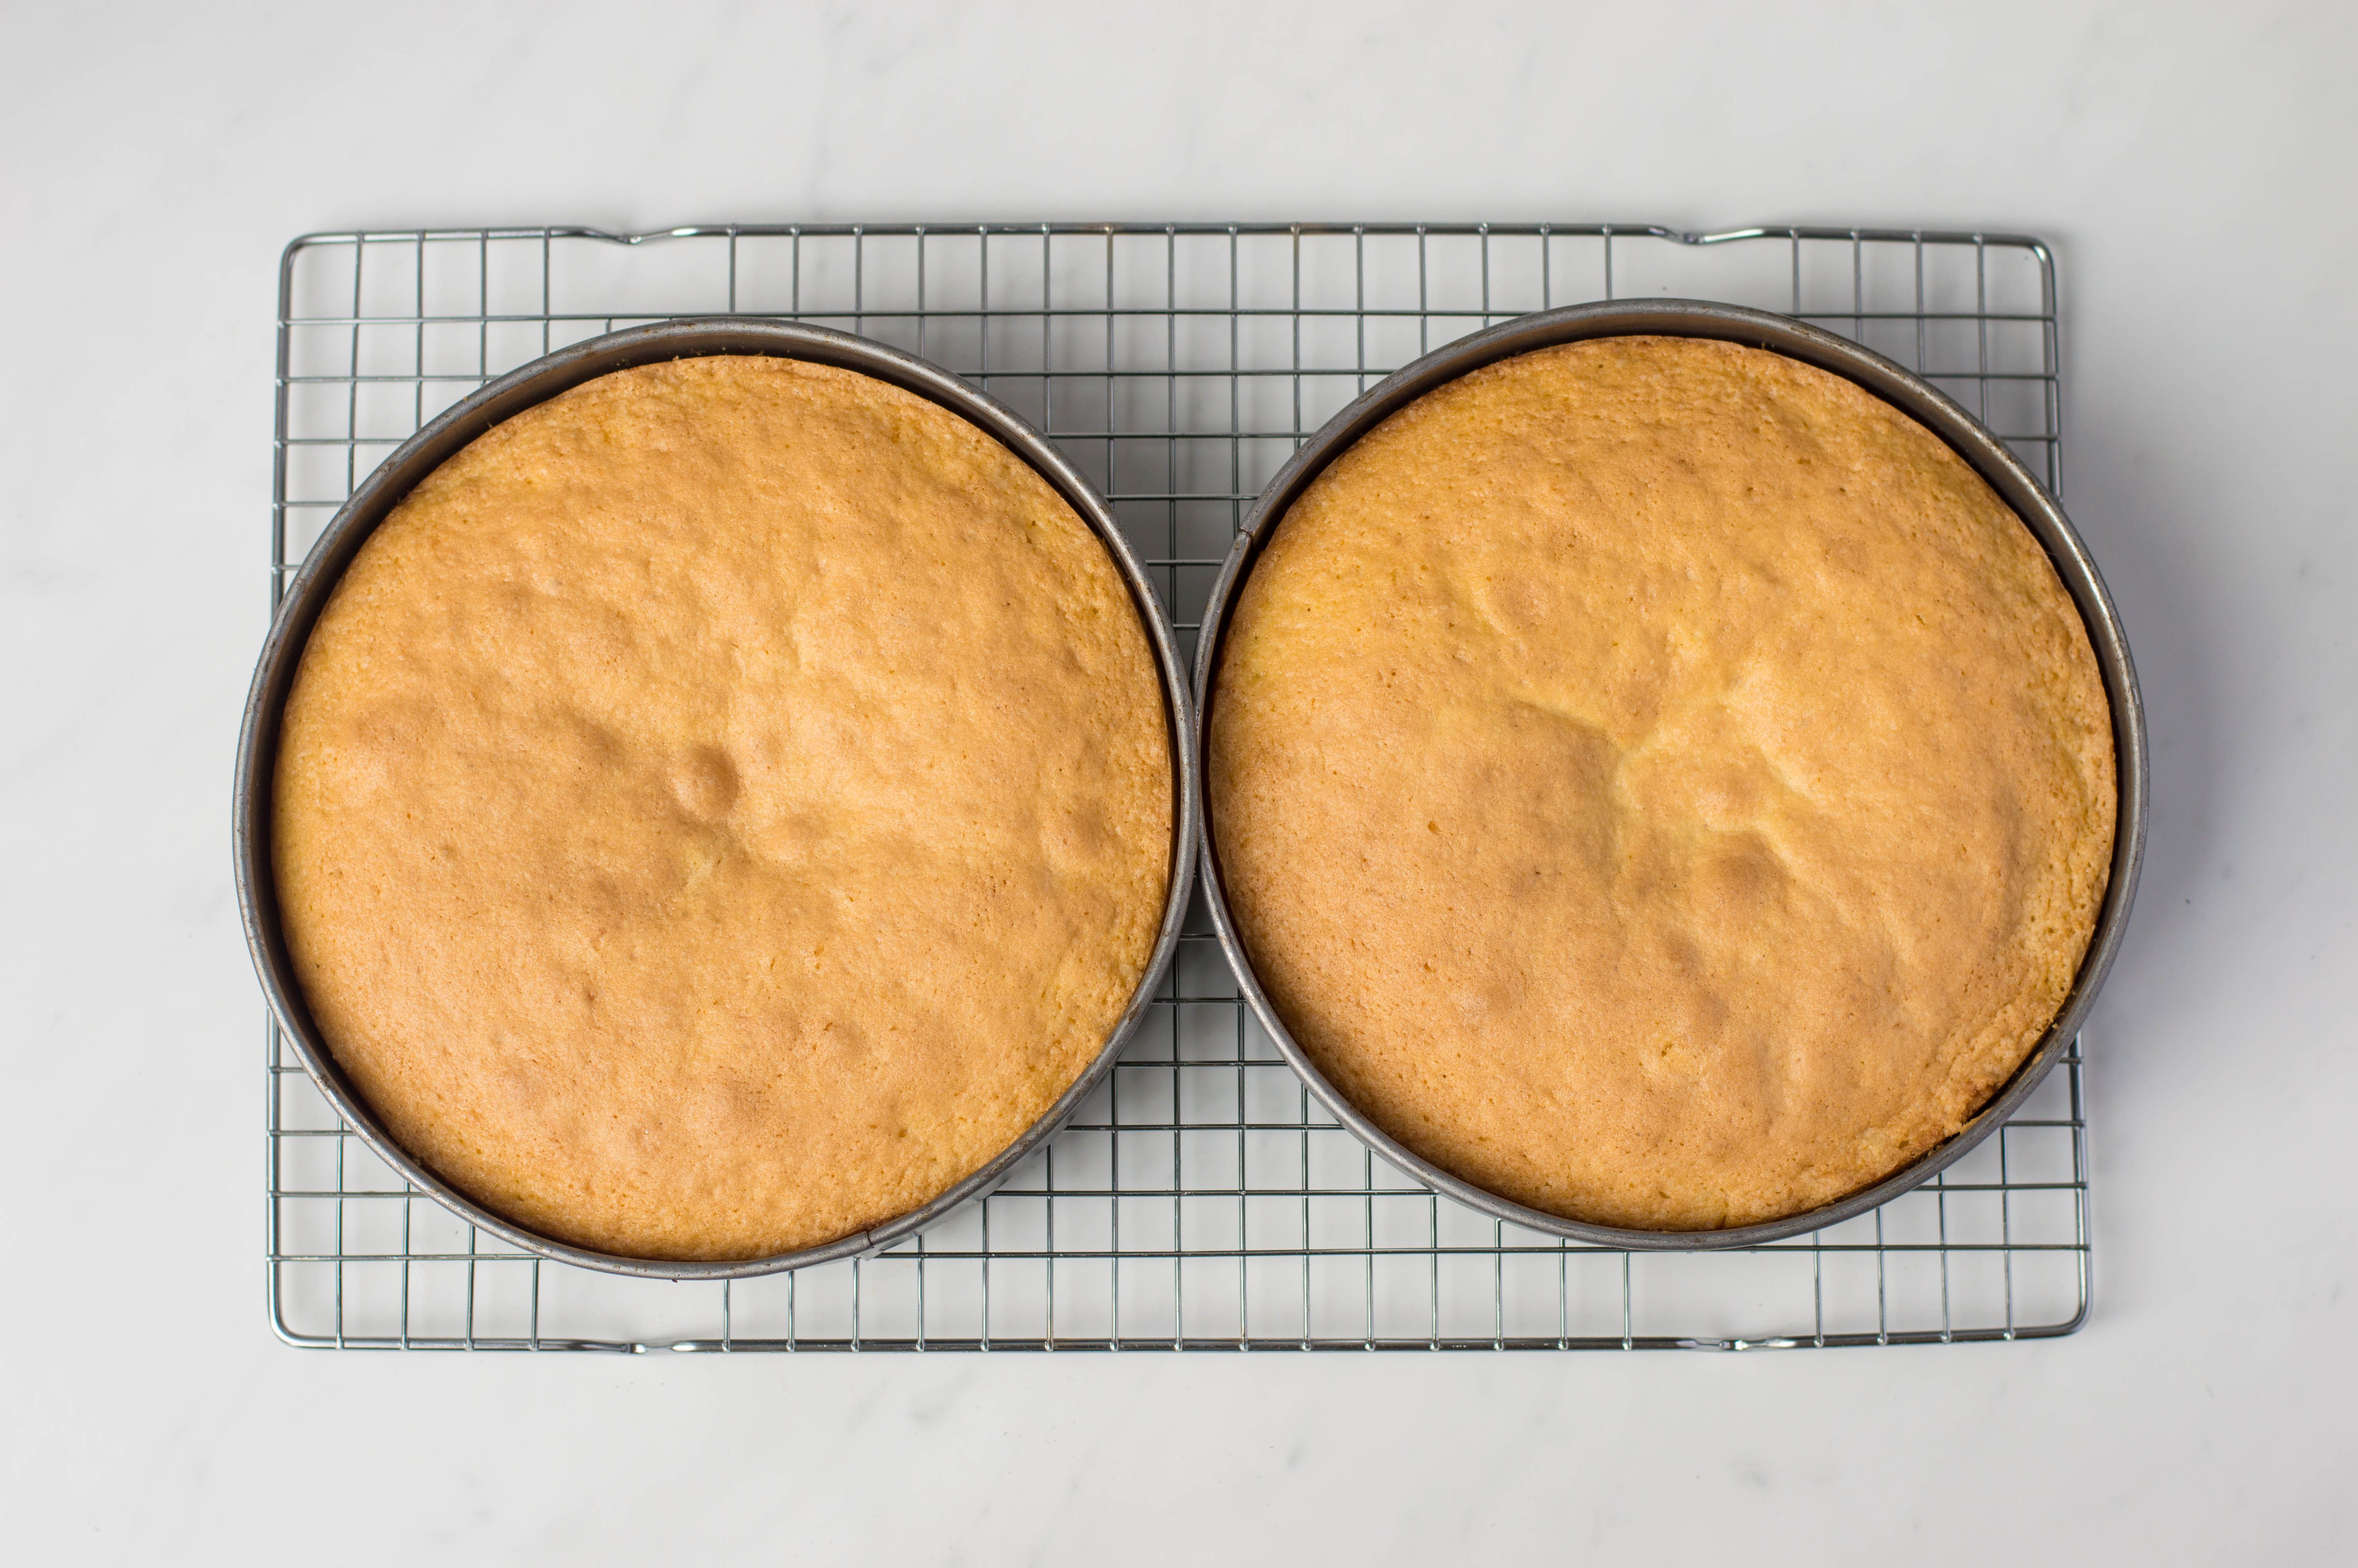 Cakes on cooling rack